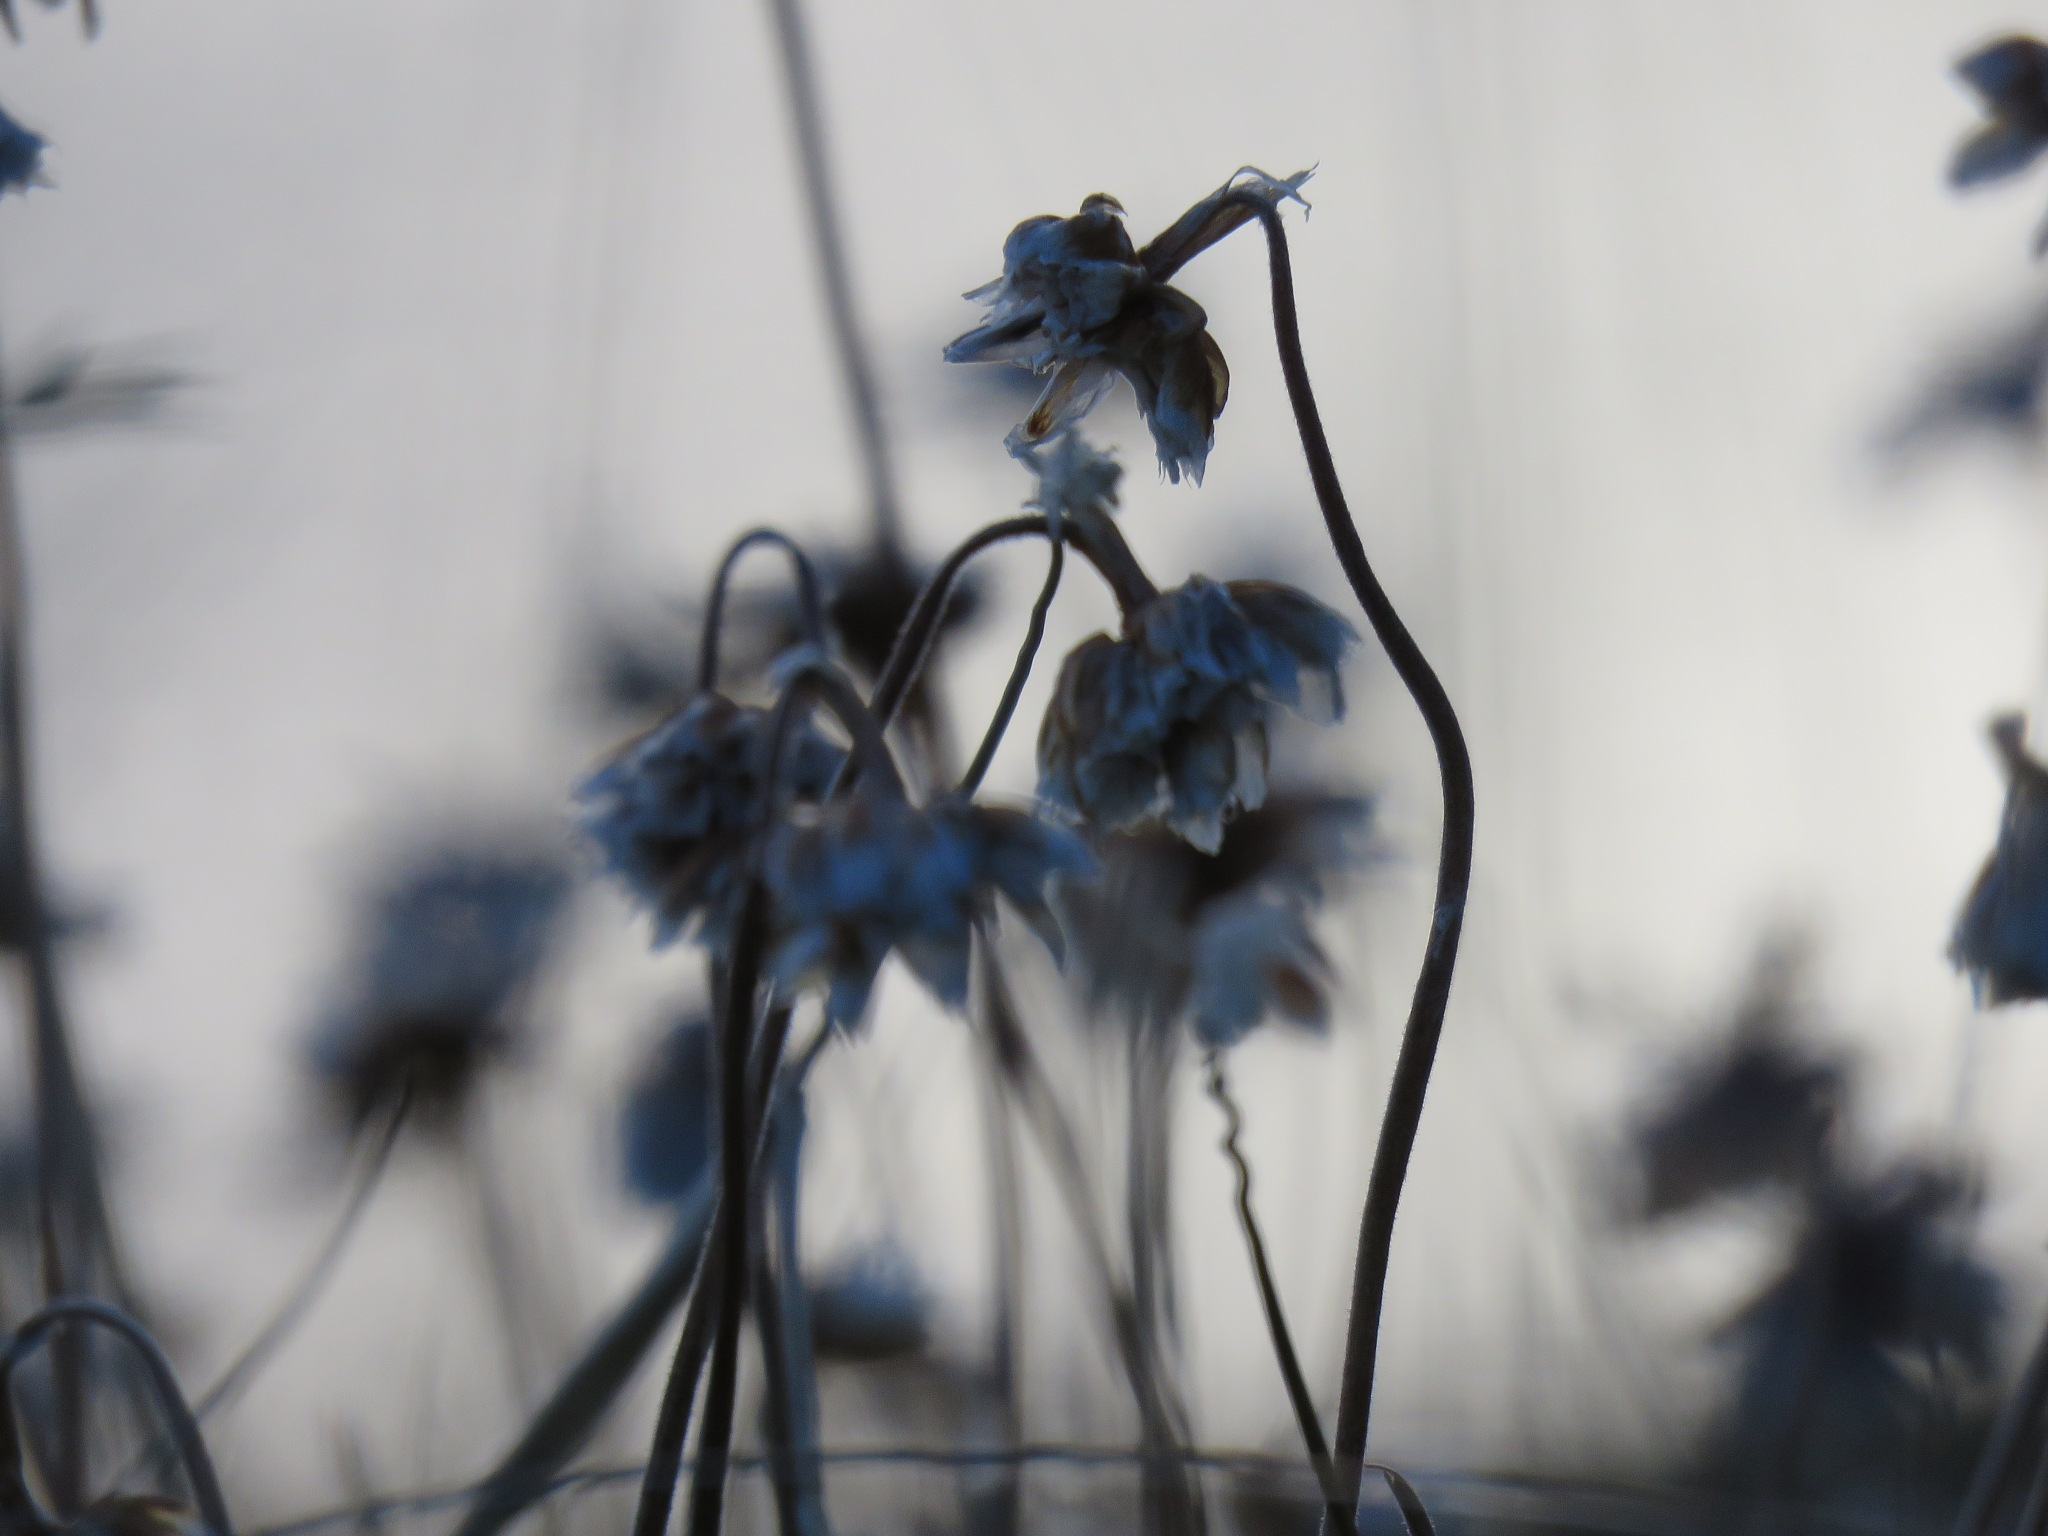 #End of the season by marit